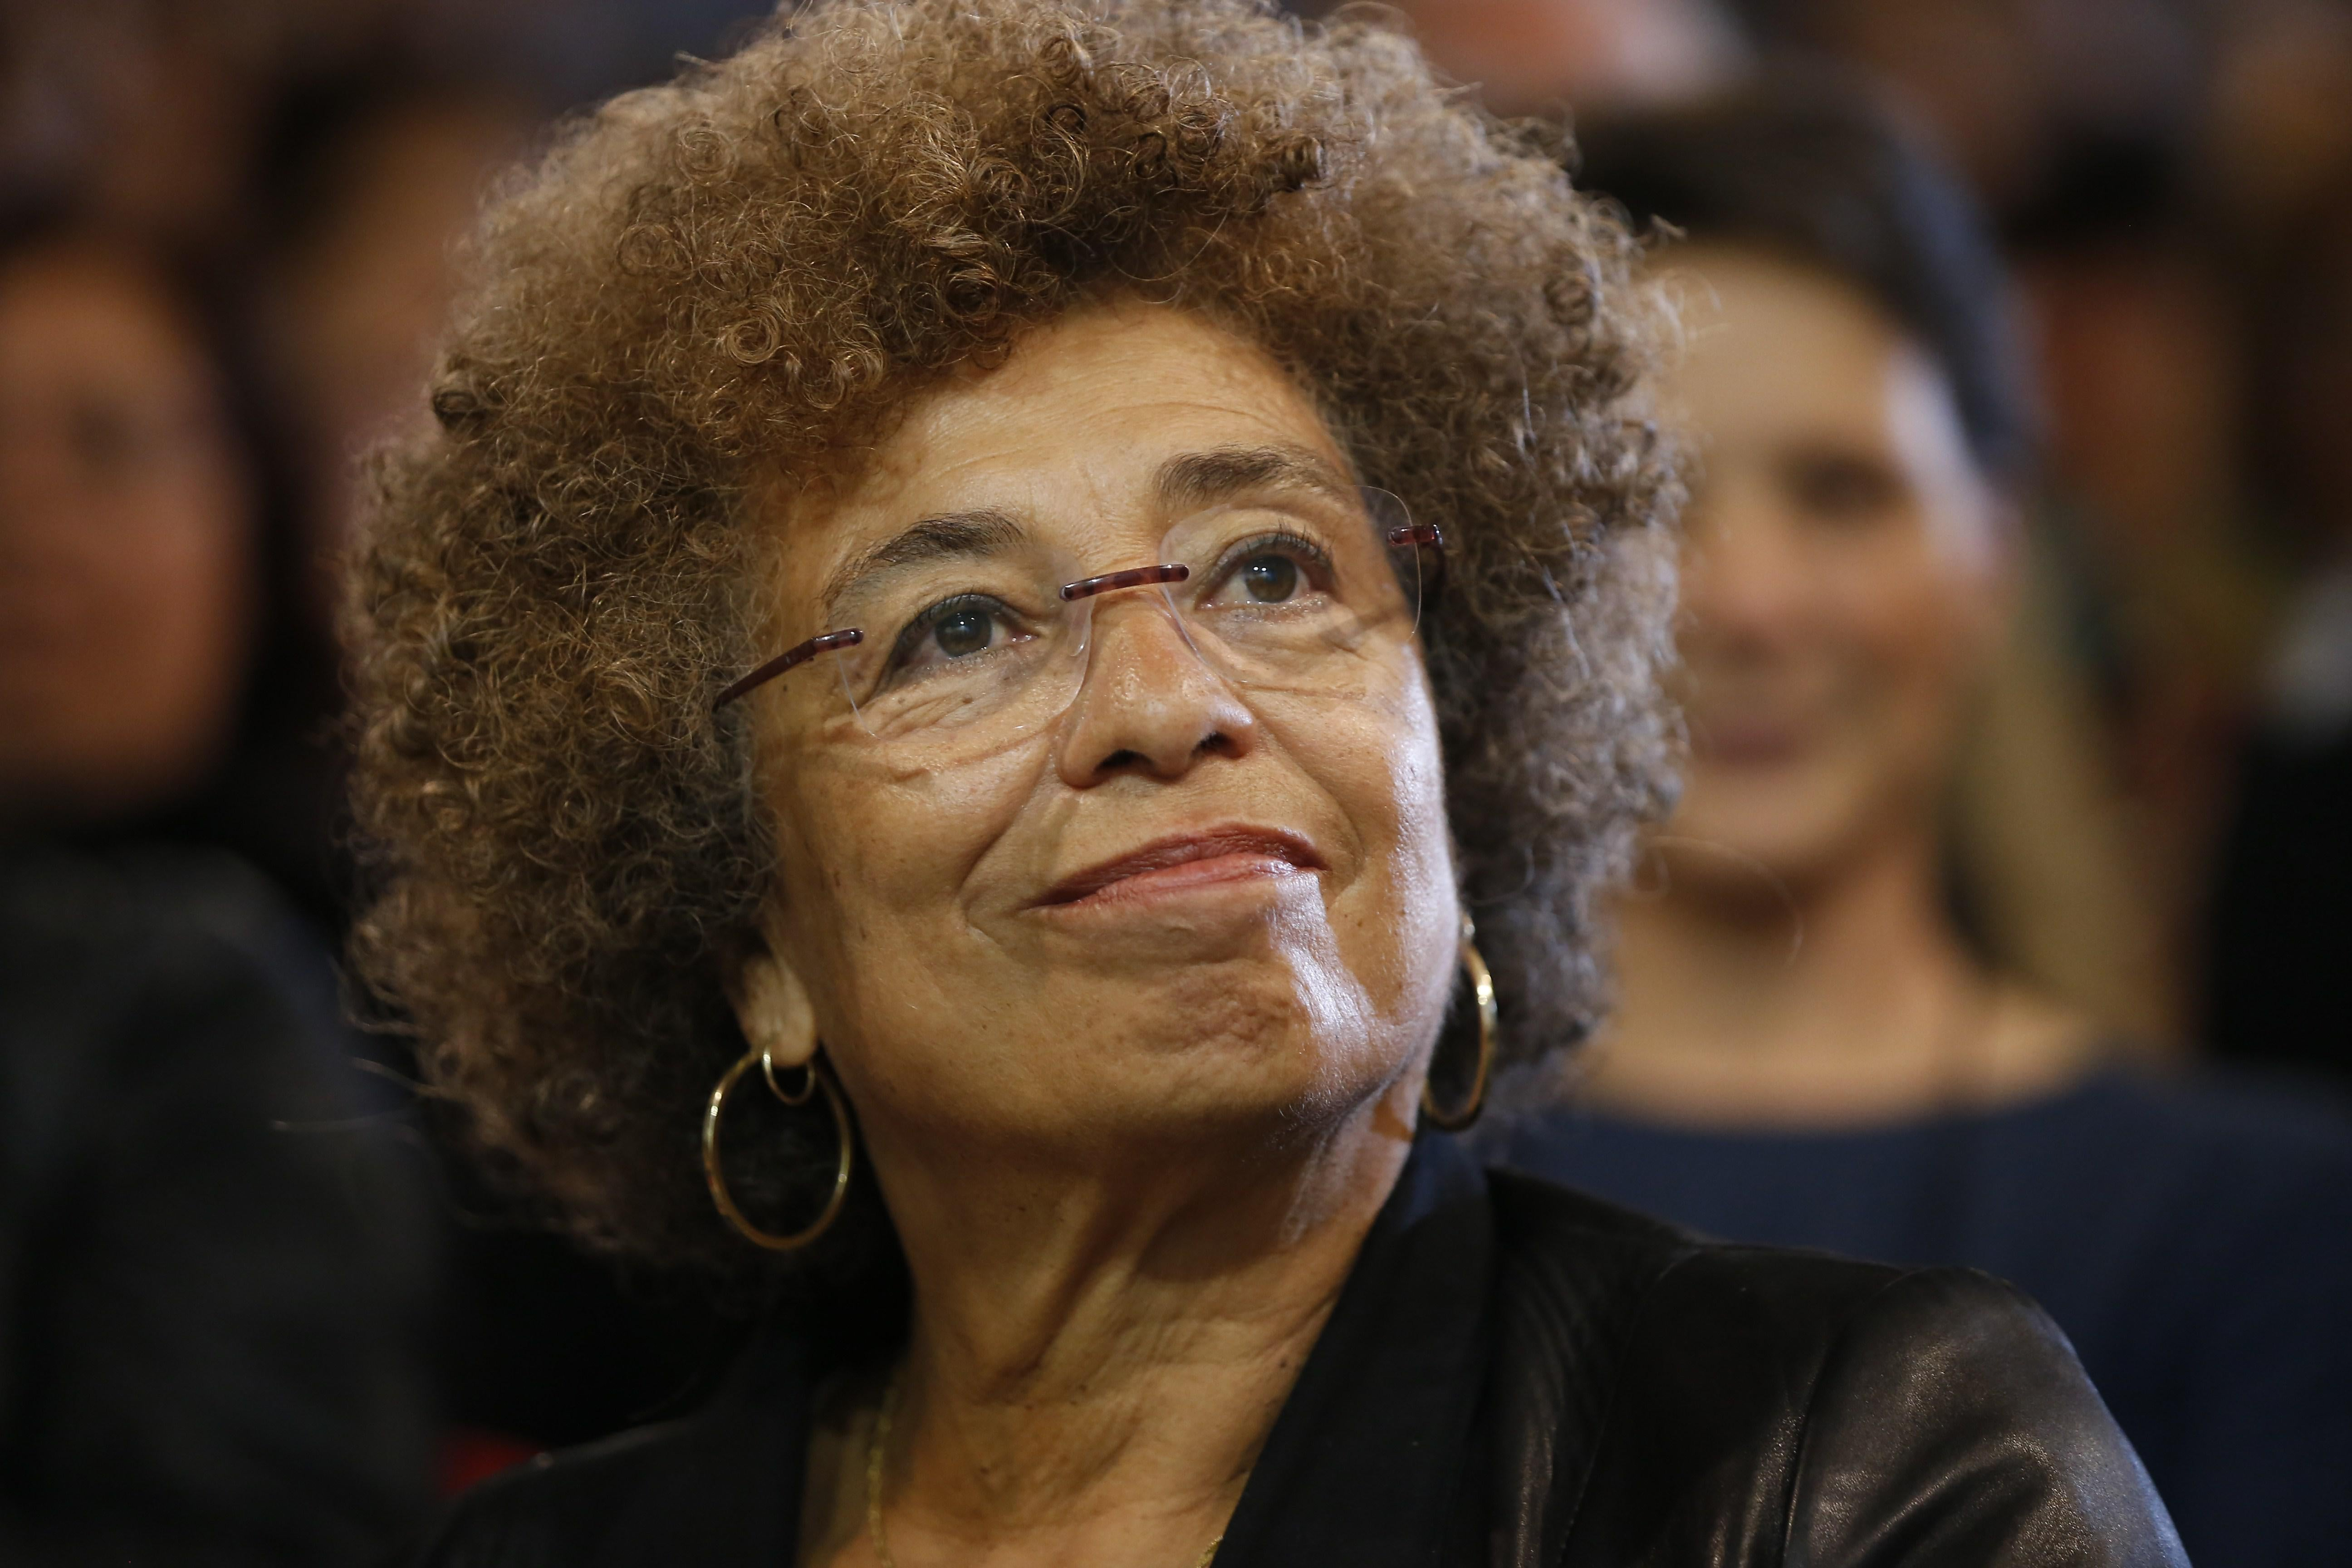 Angela Davis, sitting in front of a crowd, smiles toward the camera